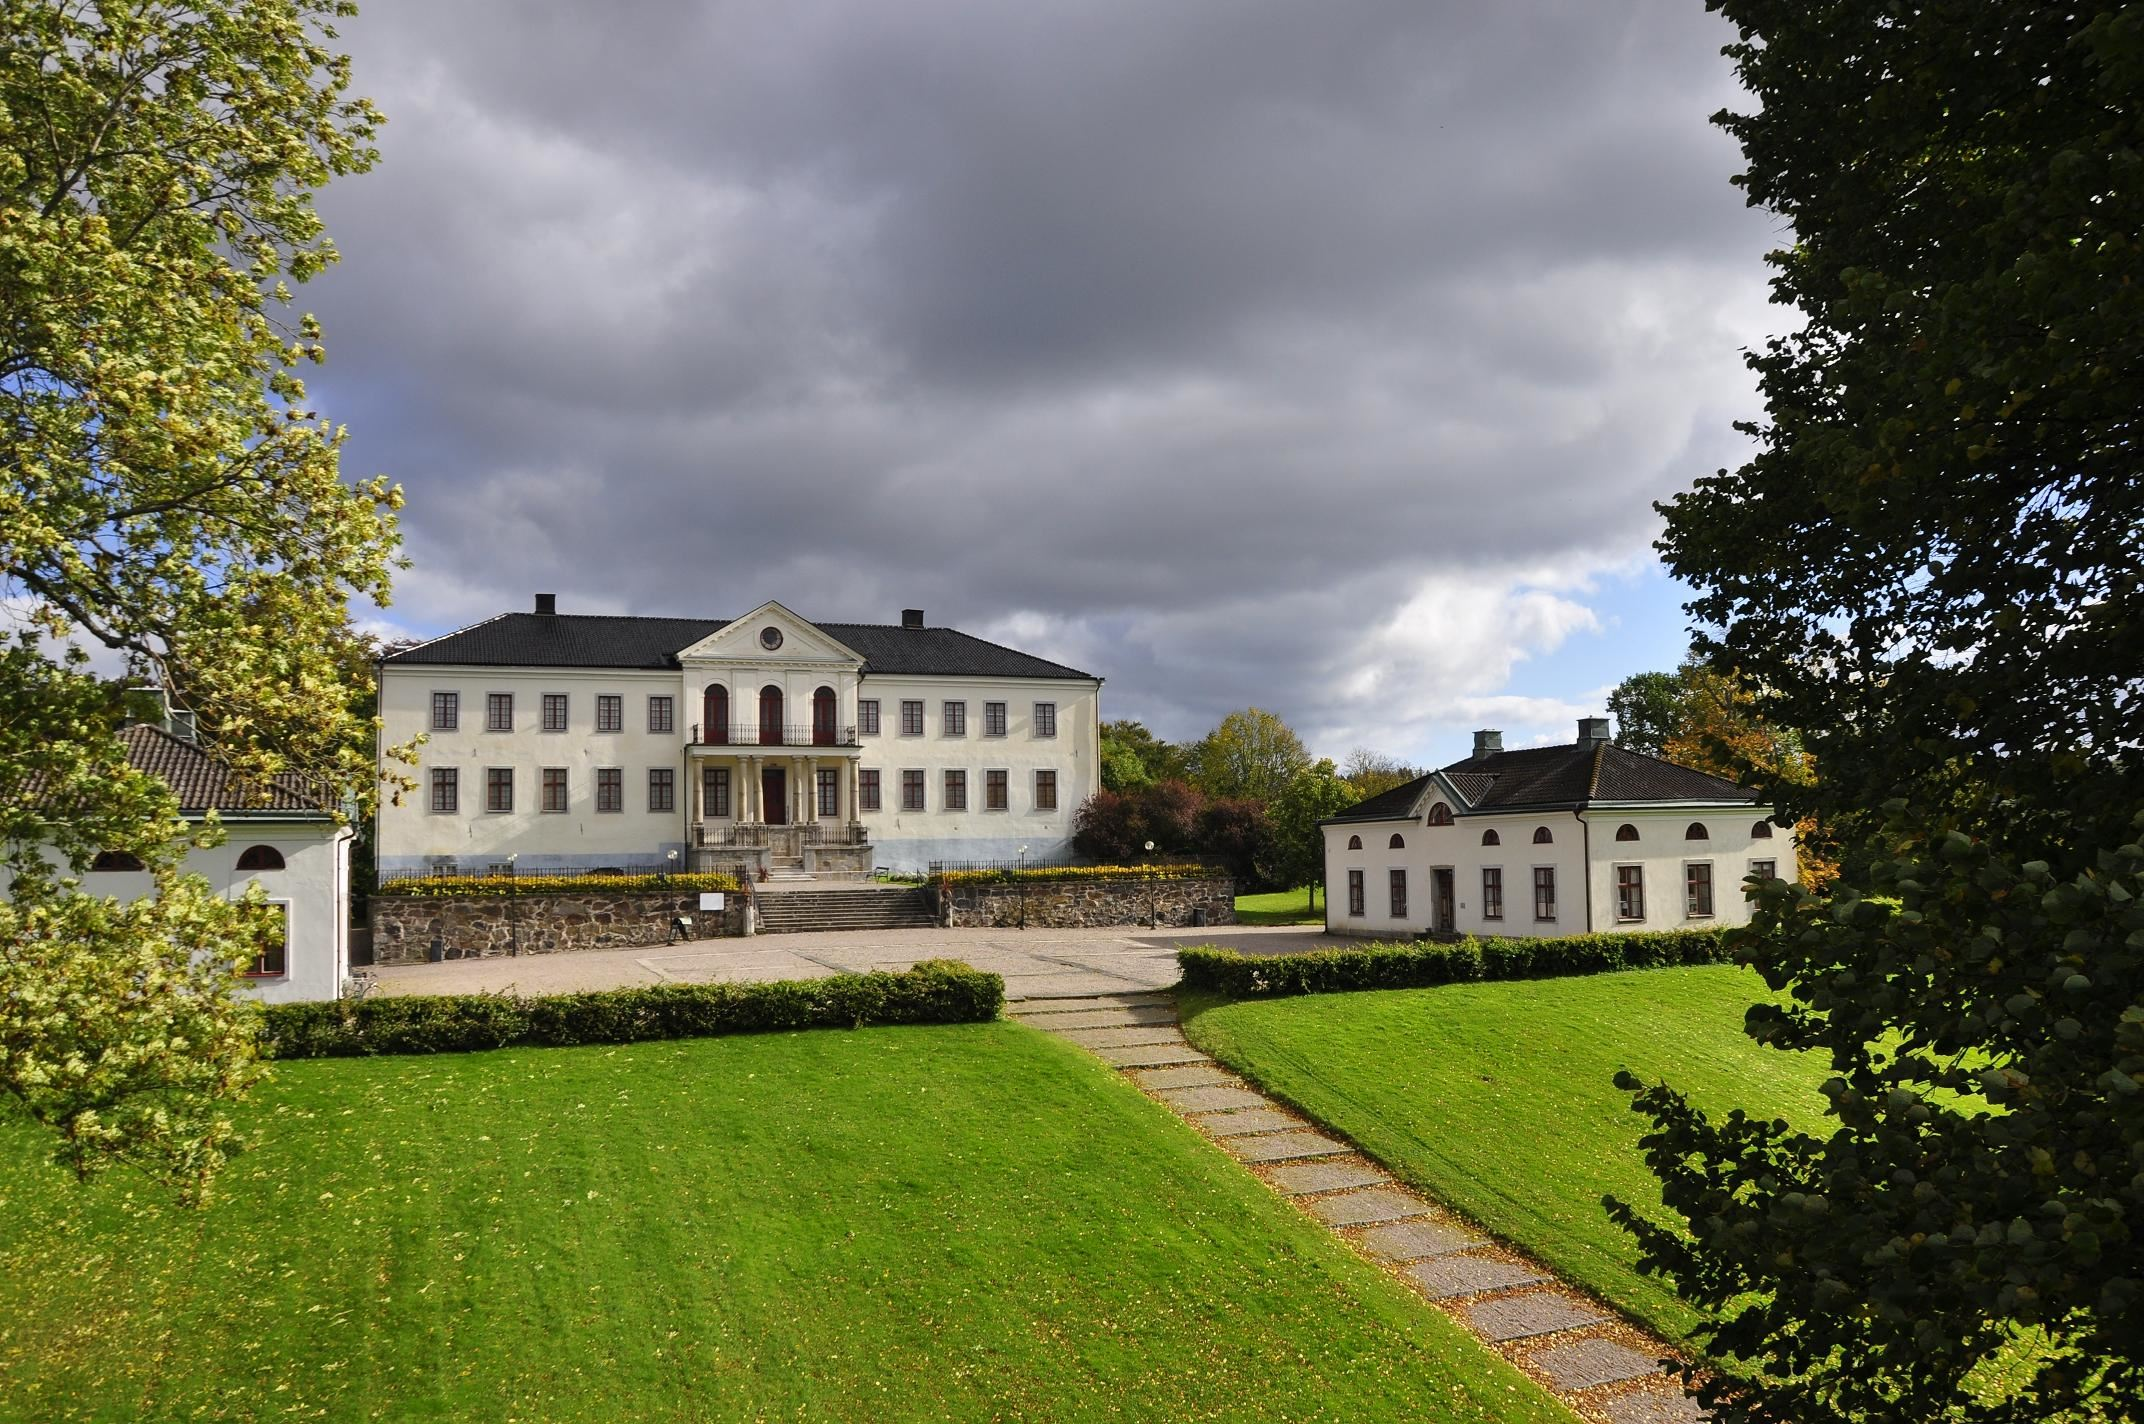 Nääs Slott, South wing, Floda